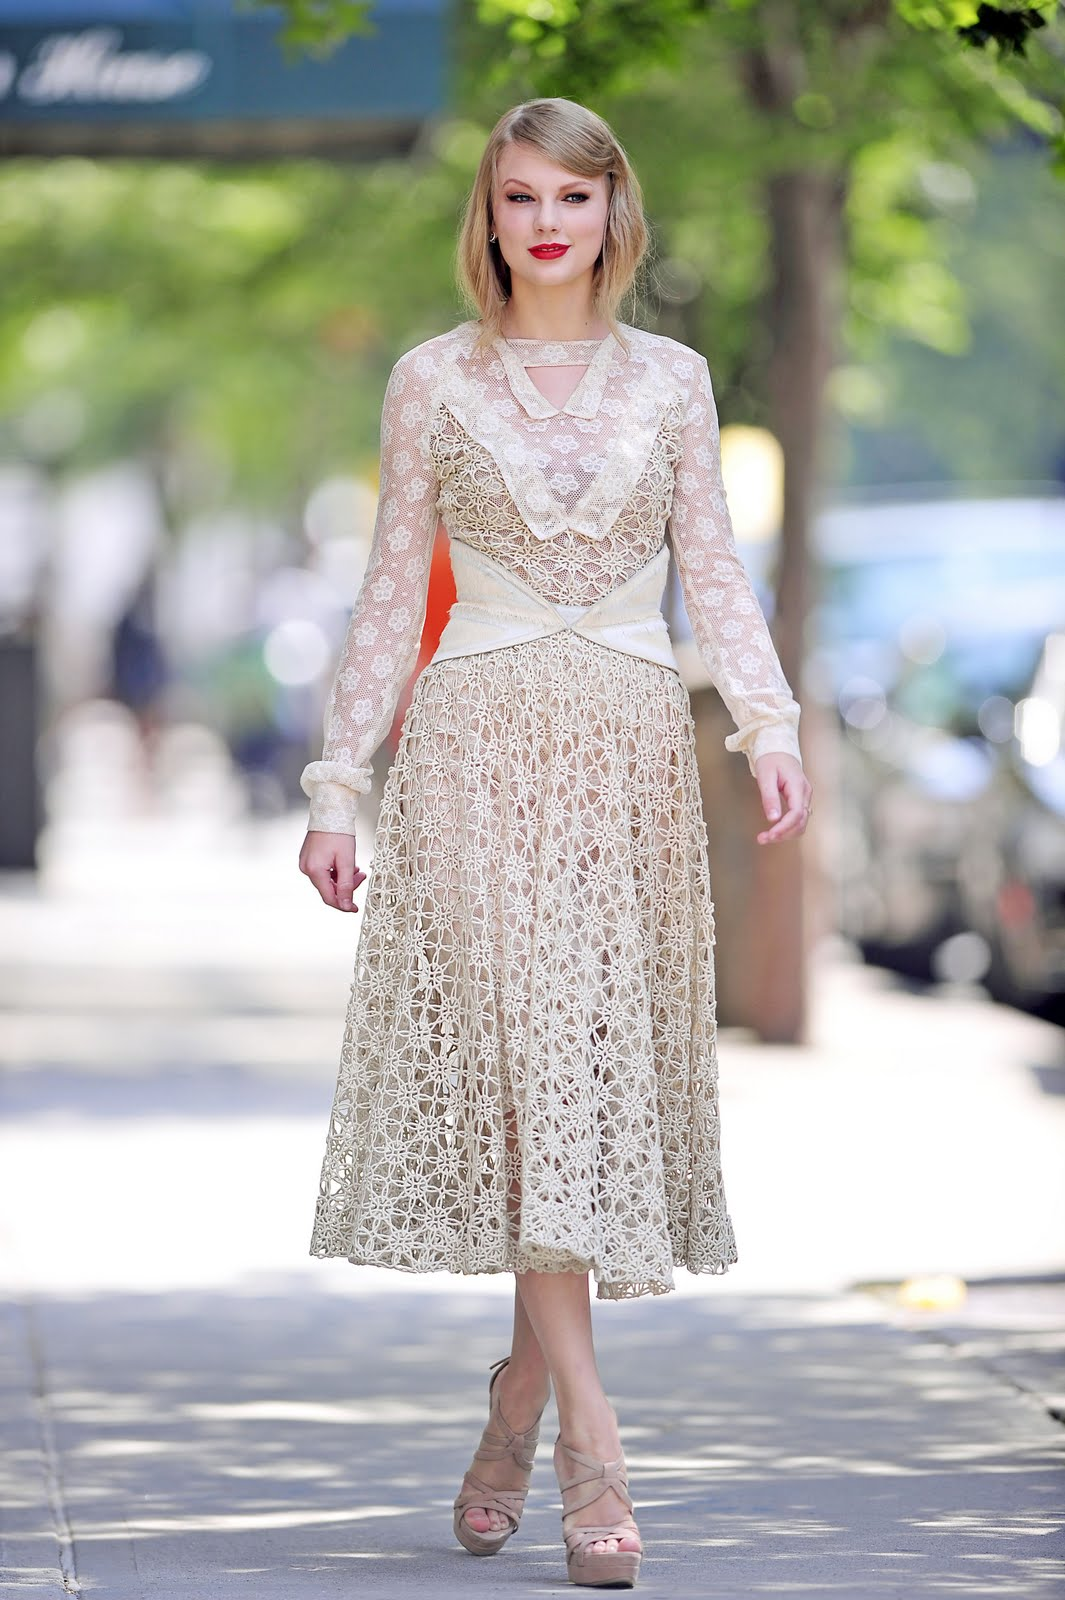 Taylor attended the the Rodarte Spring 2012 Fashion Show at Mercedes-Benz  Fashion Week in New York City! She looked absolutely stunning! 1c09a0a0c01